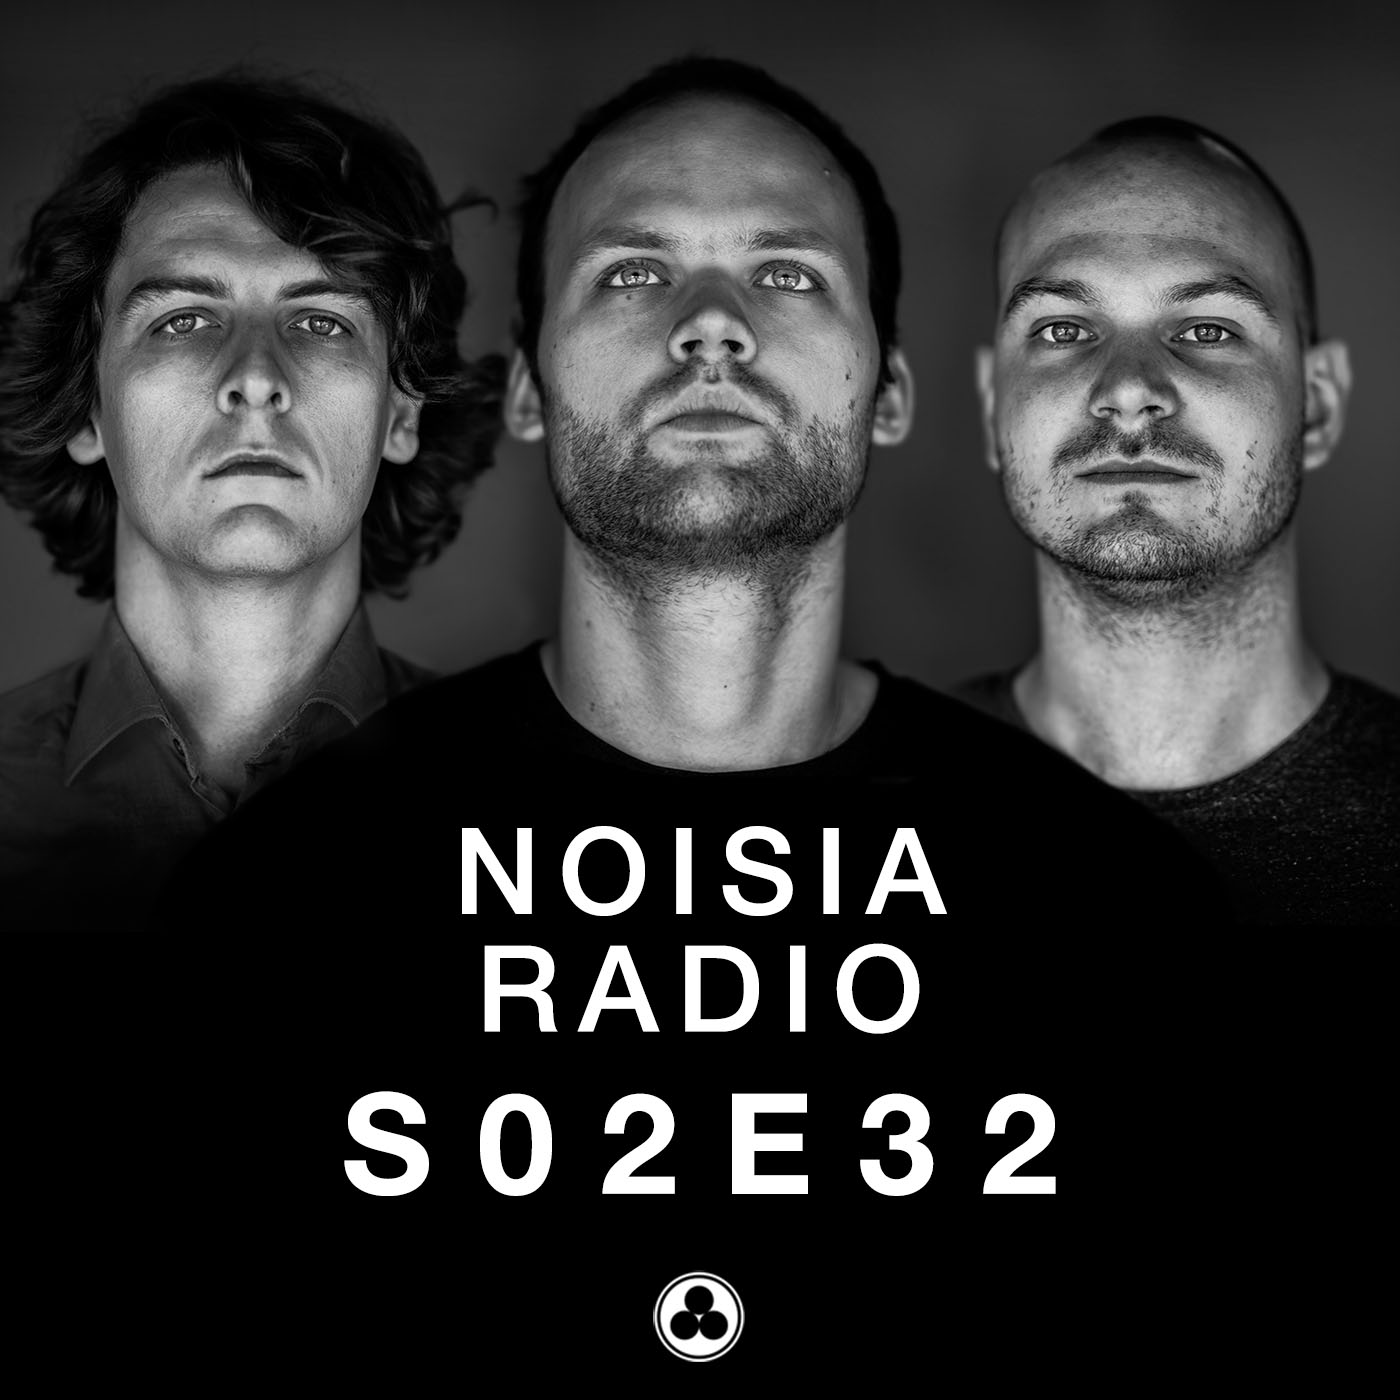 Noisia Radio S02E32